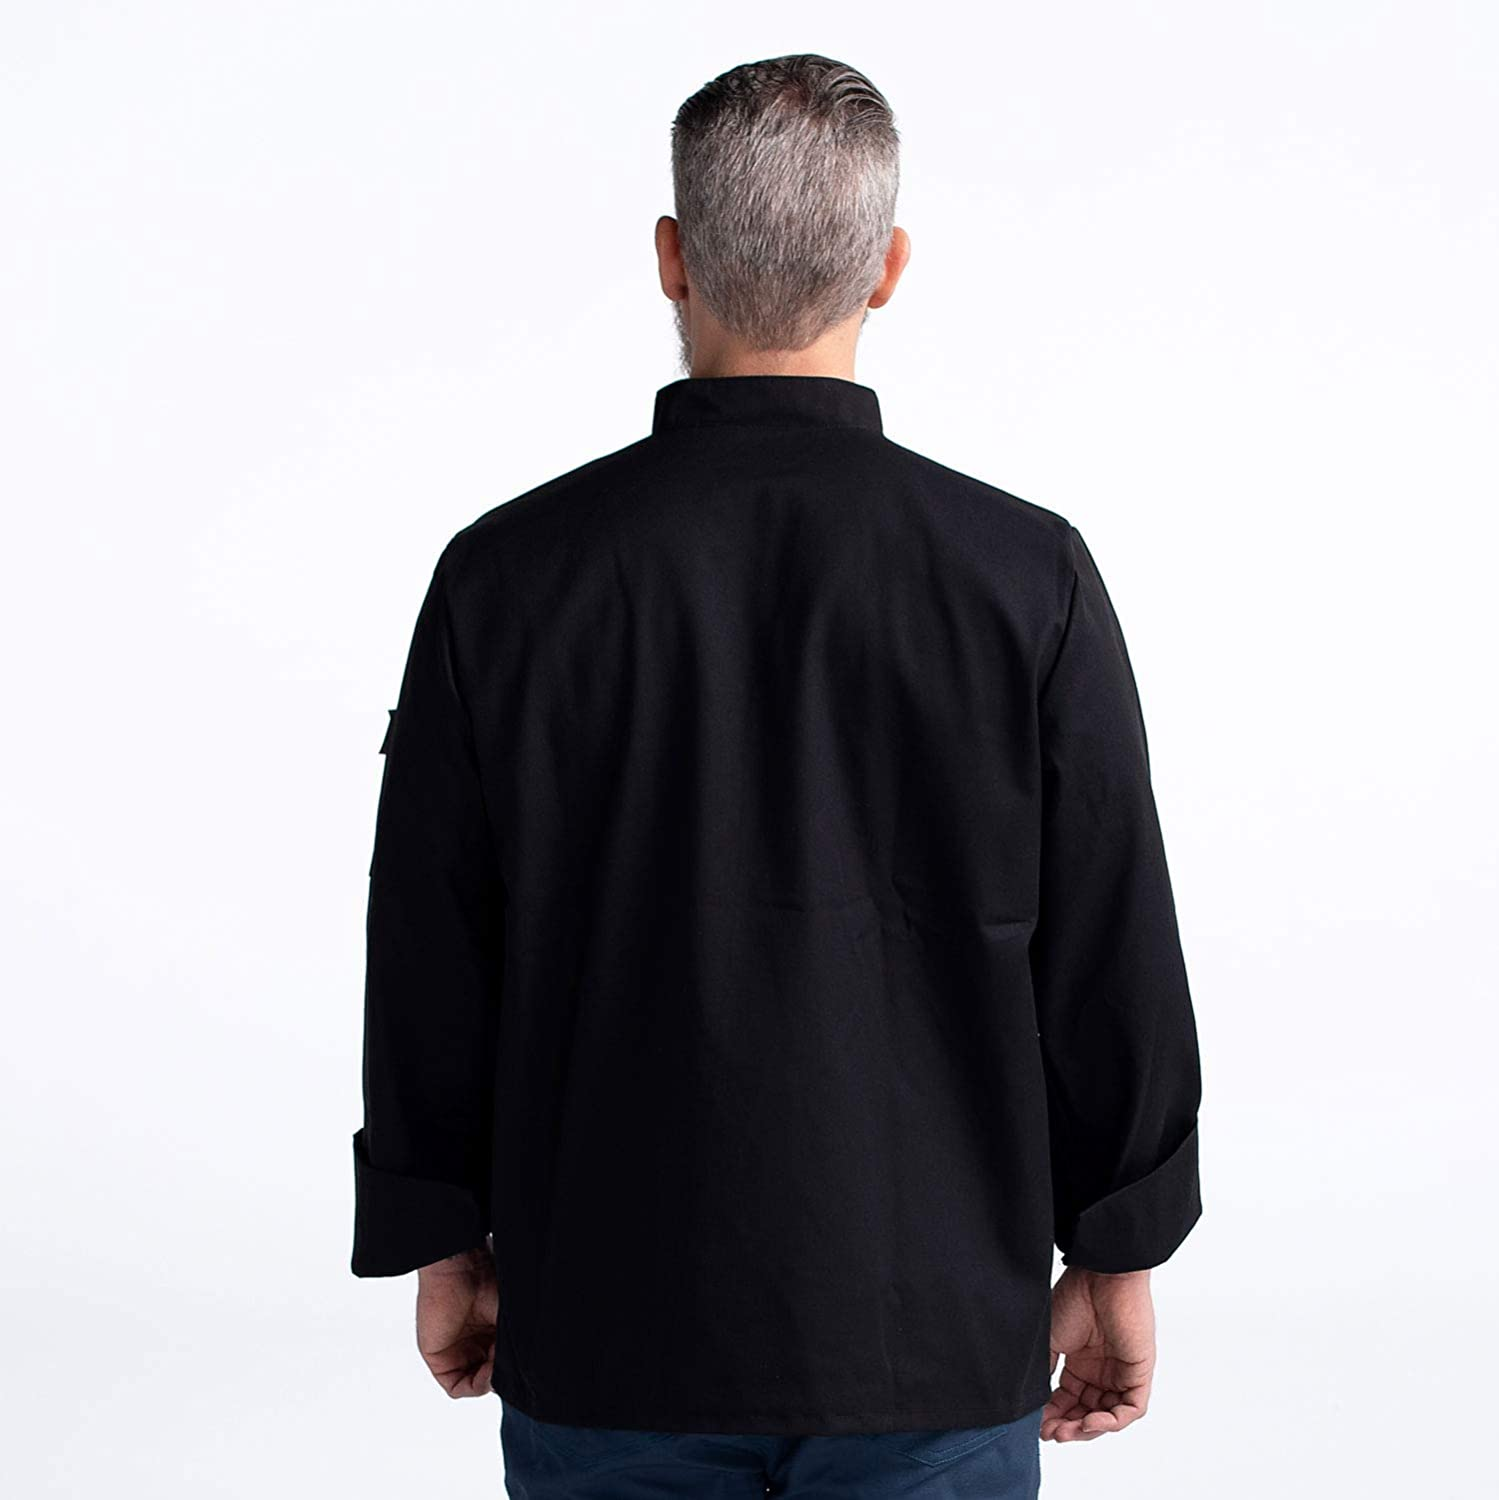 Chefwear Chef Jacket Long Sleeve Primary Cloth Knot Button